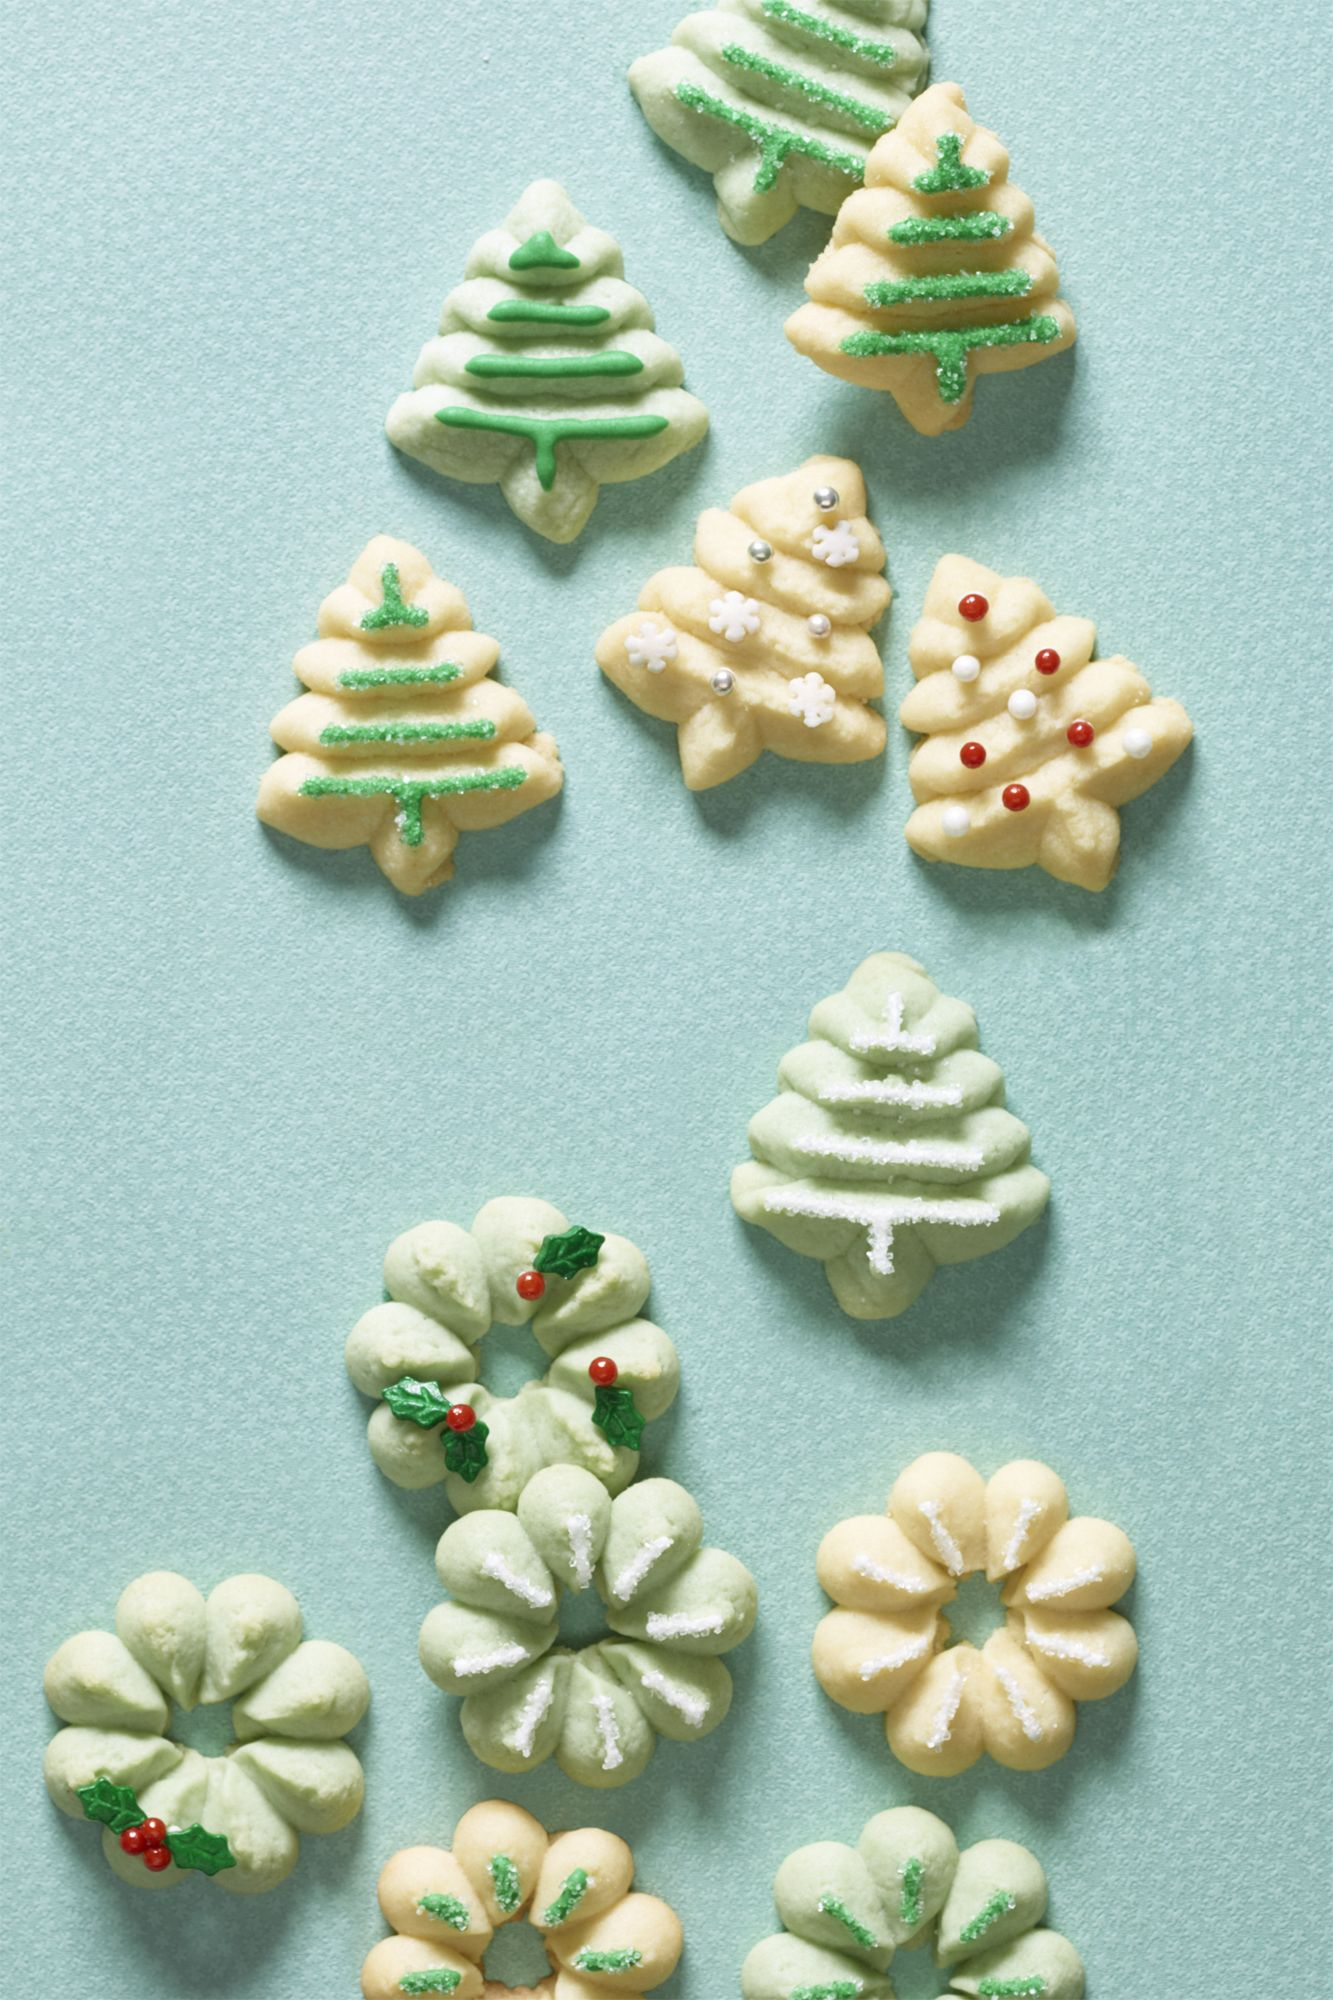 70 Easy Christmas Cookies - Best Recipes for Holiday Cookie Ideas